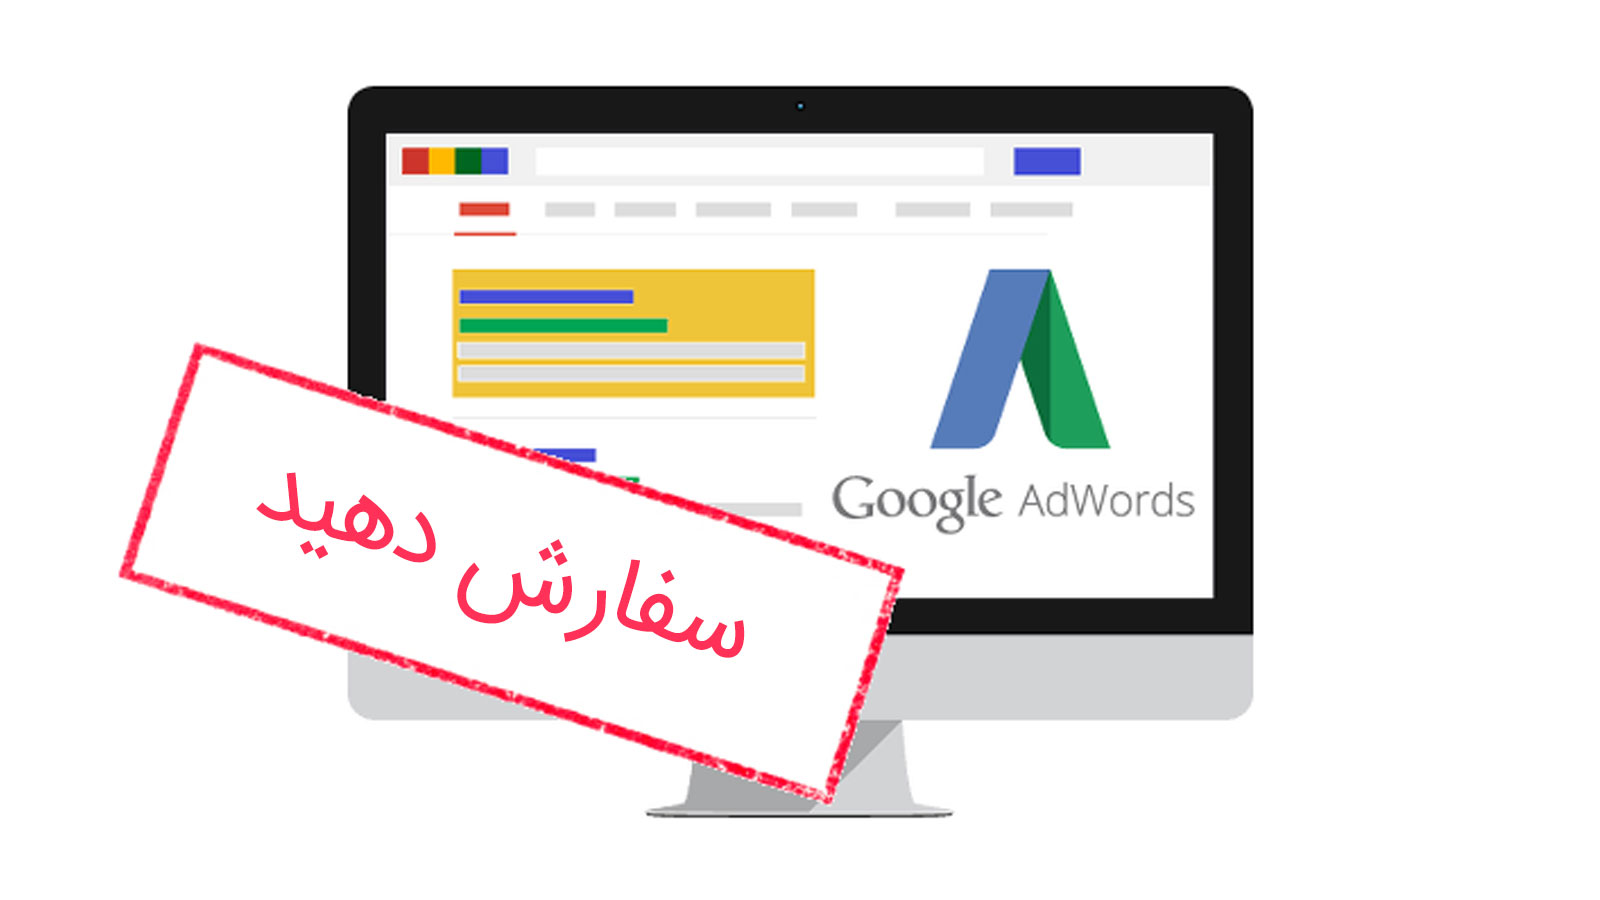 buy google adwords account - ادوردز گوگل